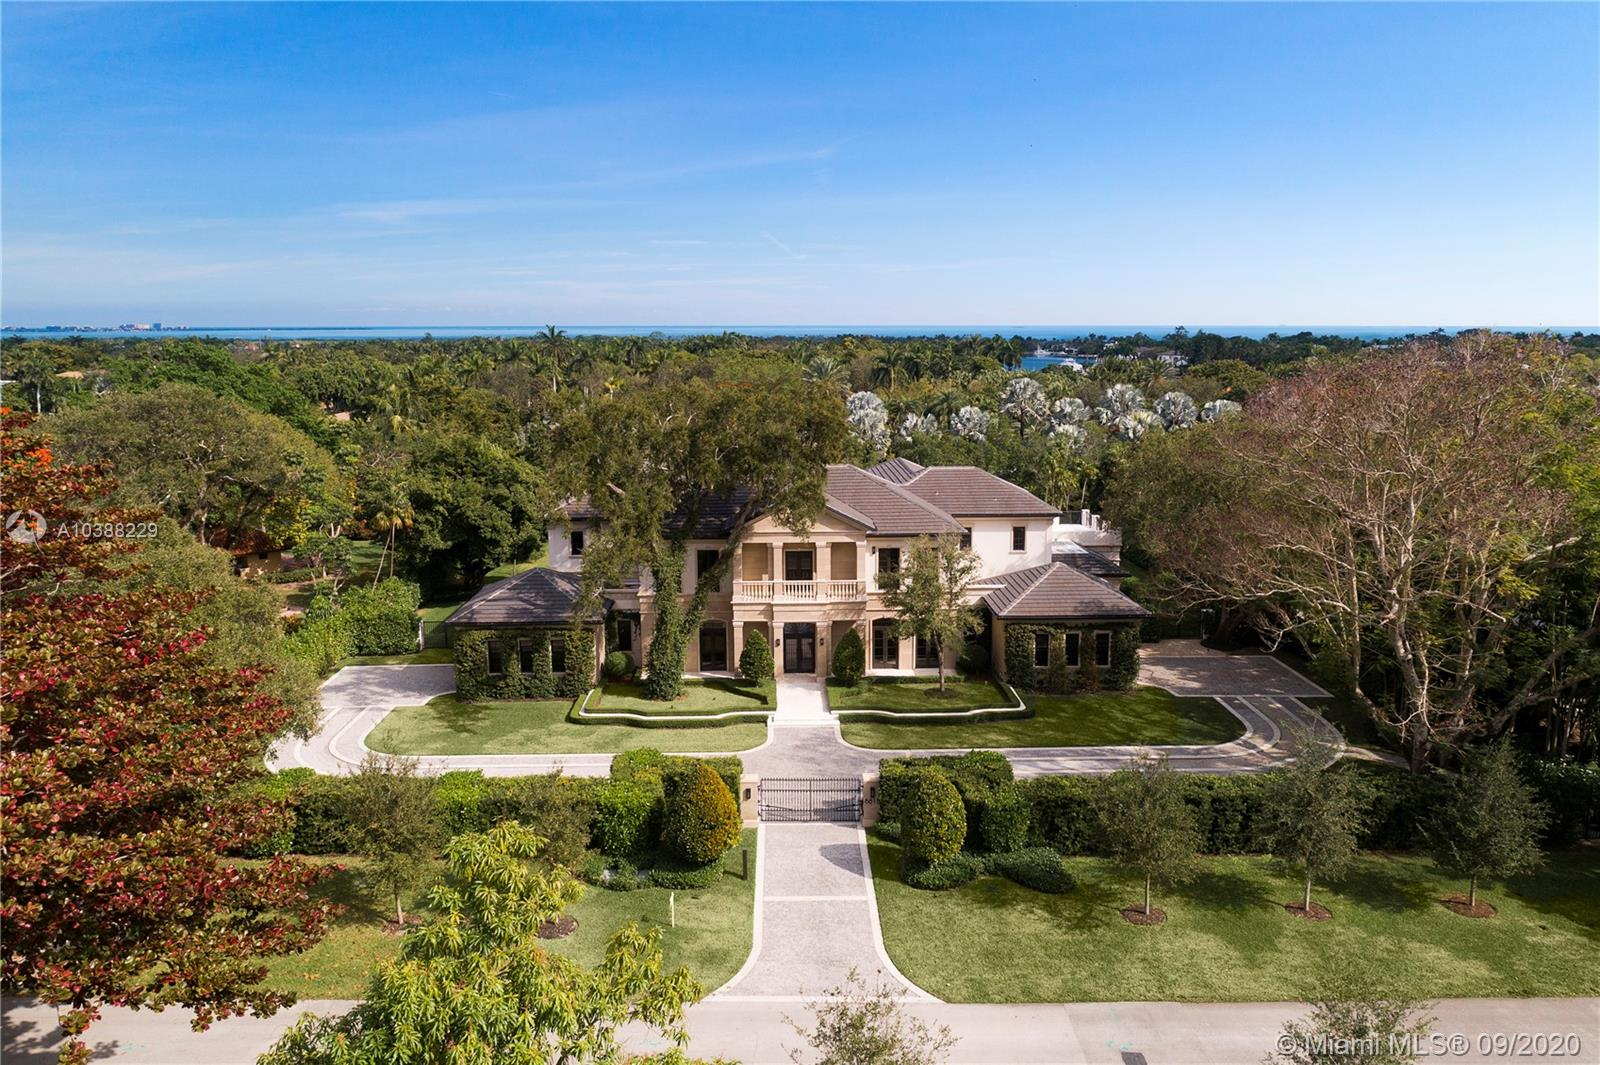 8815 Arvida Dr, Coral Gables, Florida 6 Bedroom as one of Homes & Land Real Estate